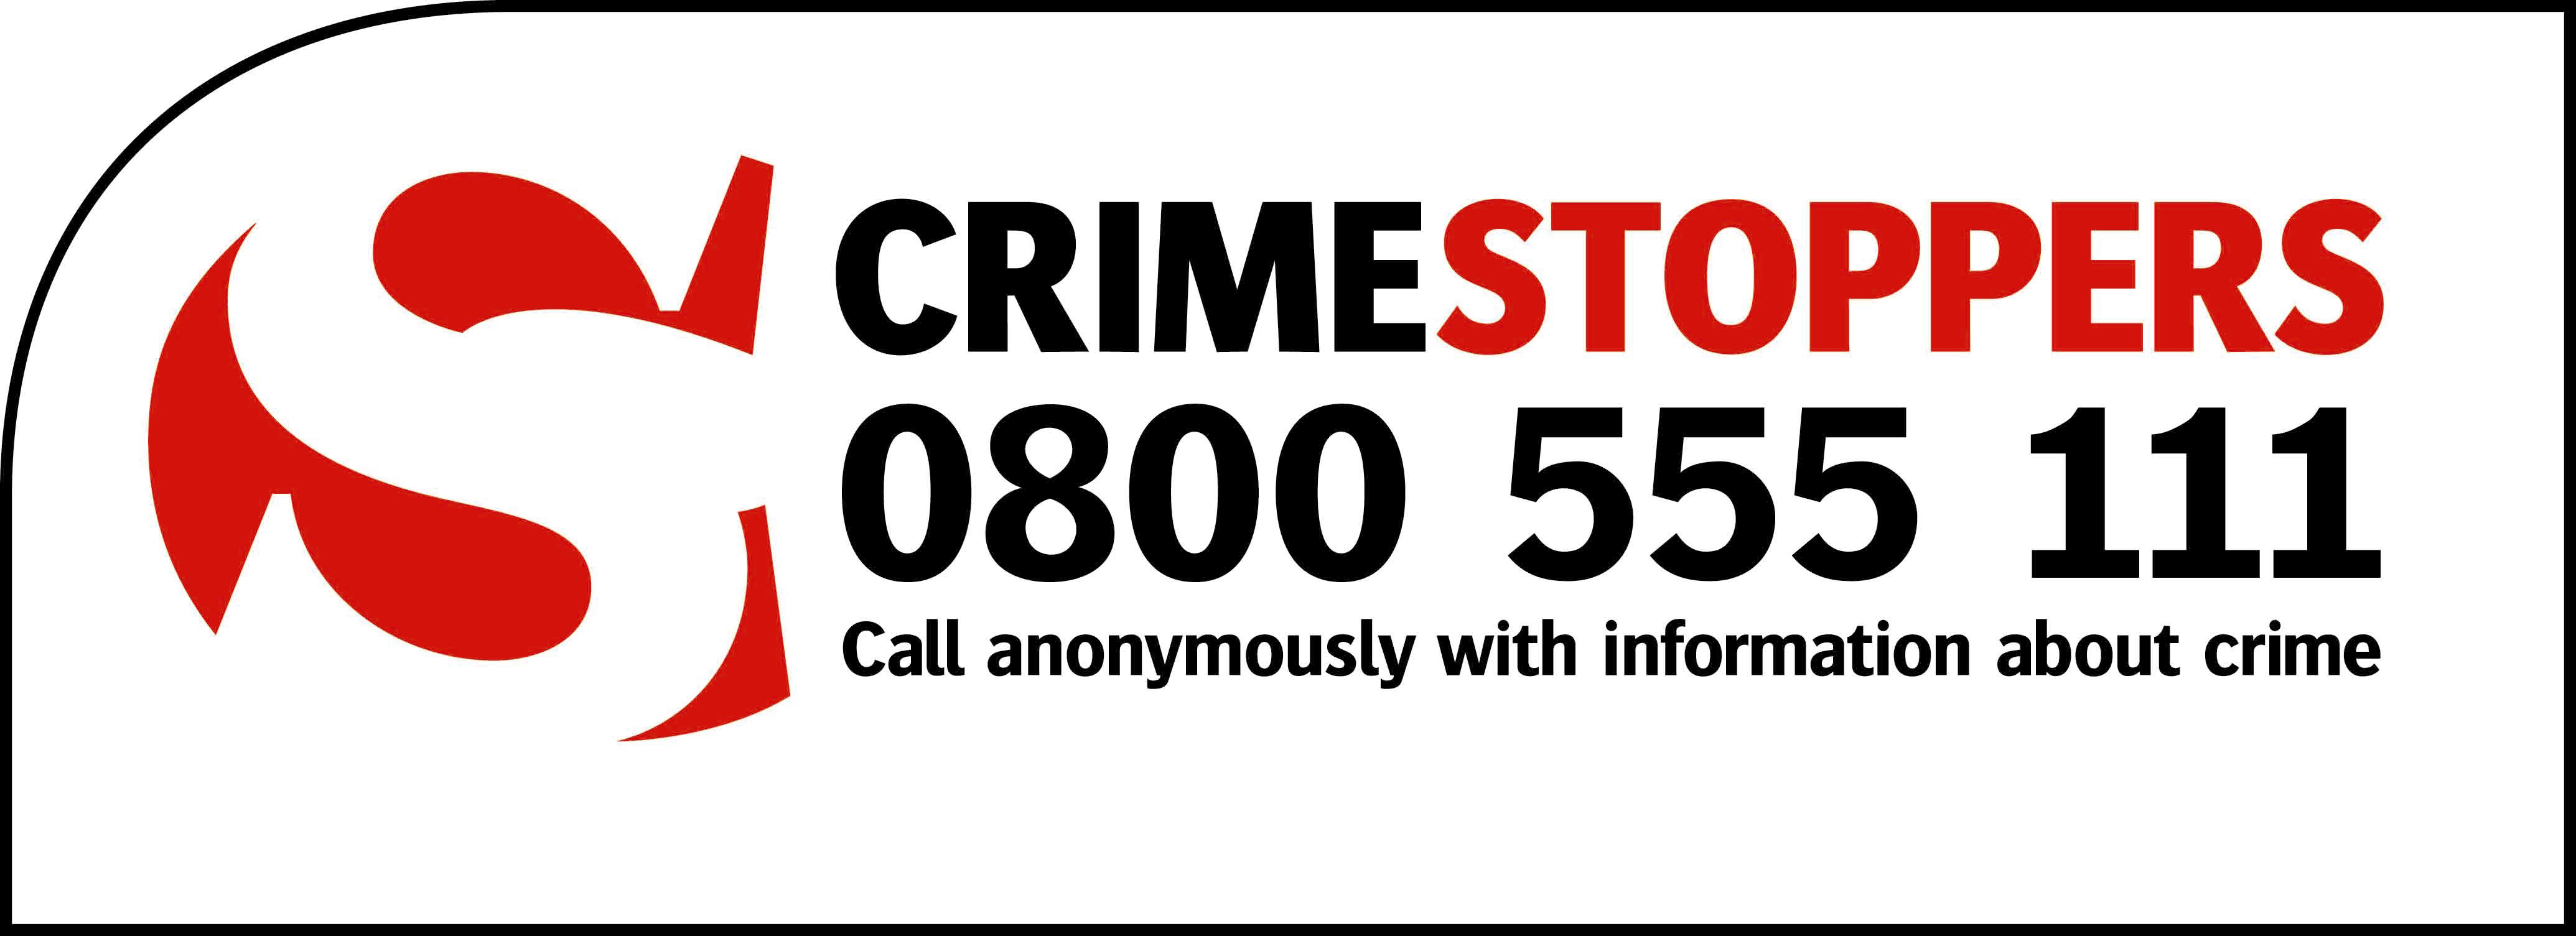 Welcome to BC Crime Stoppers